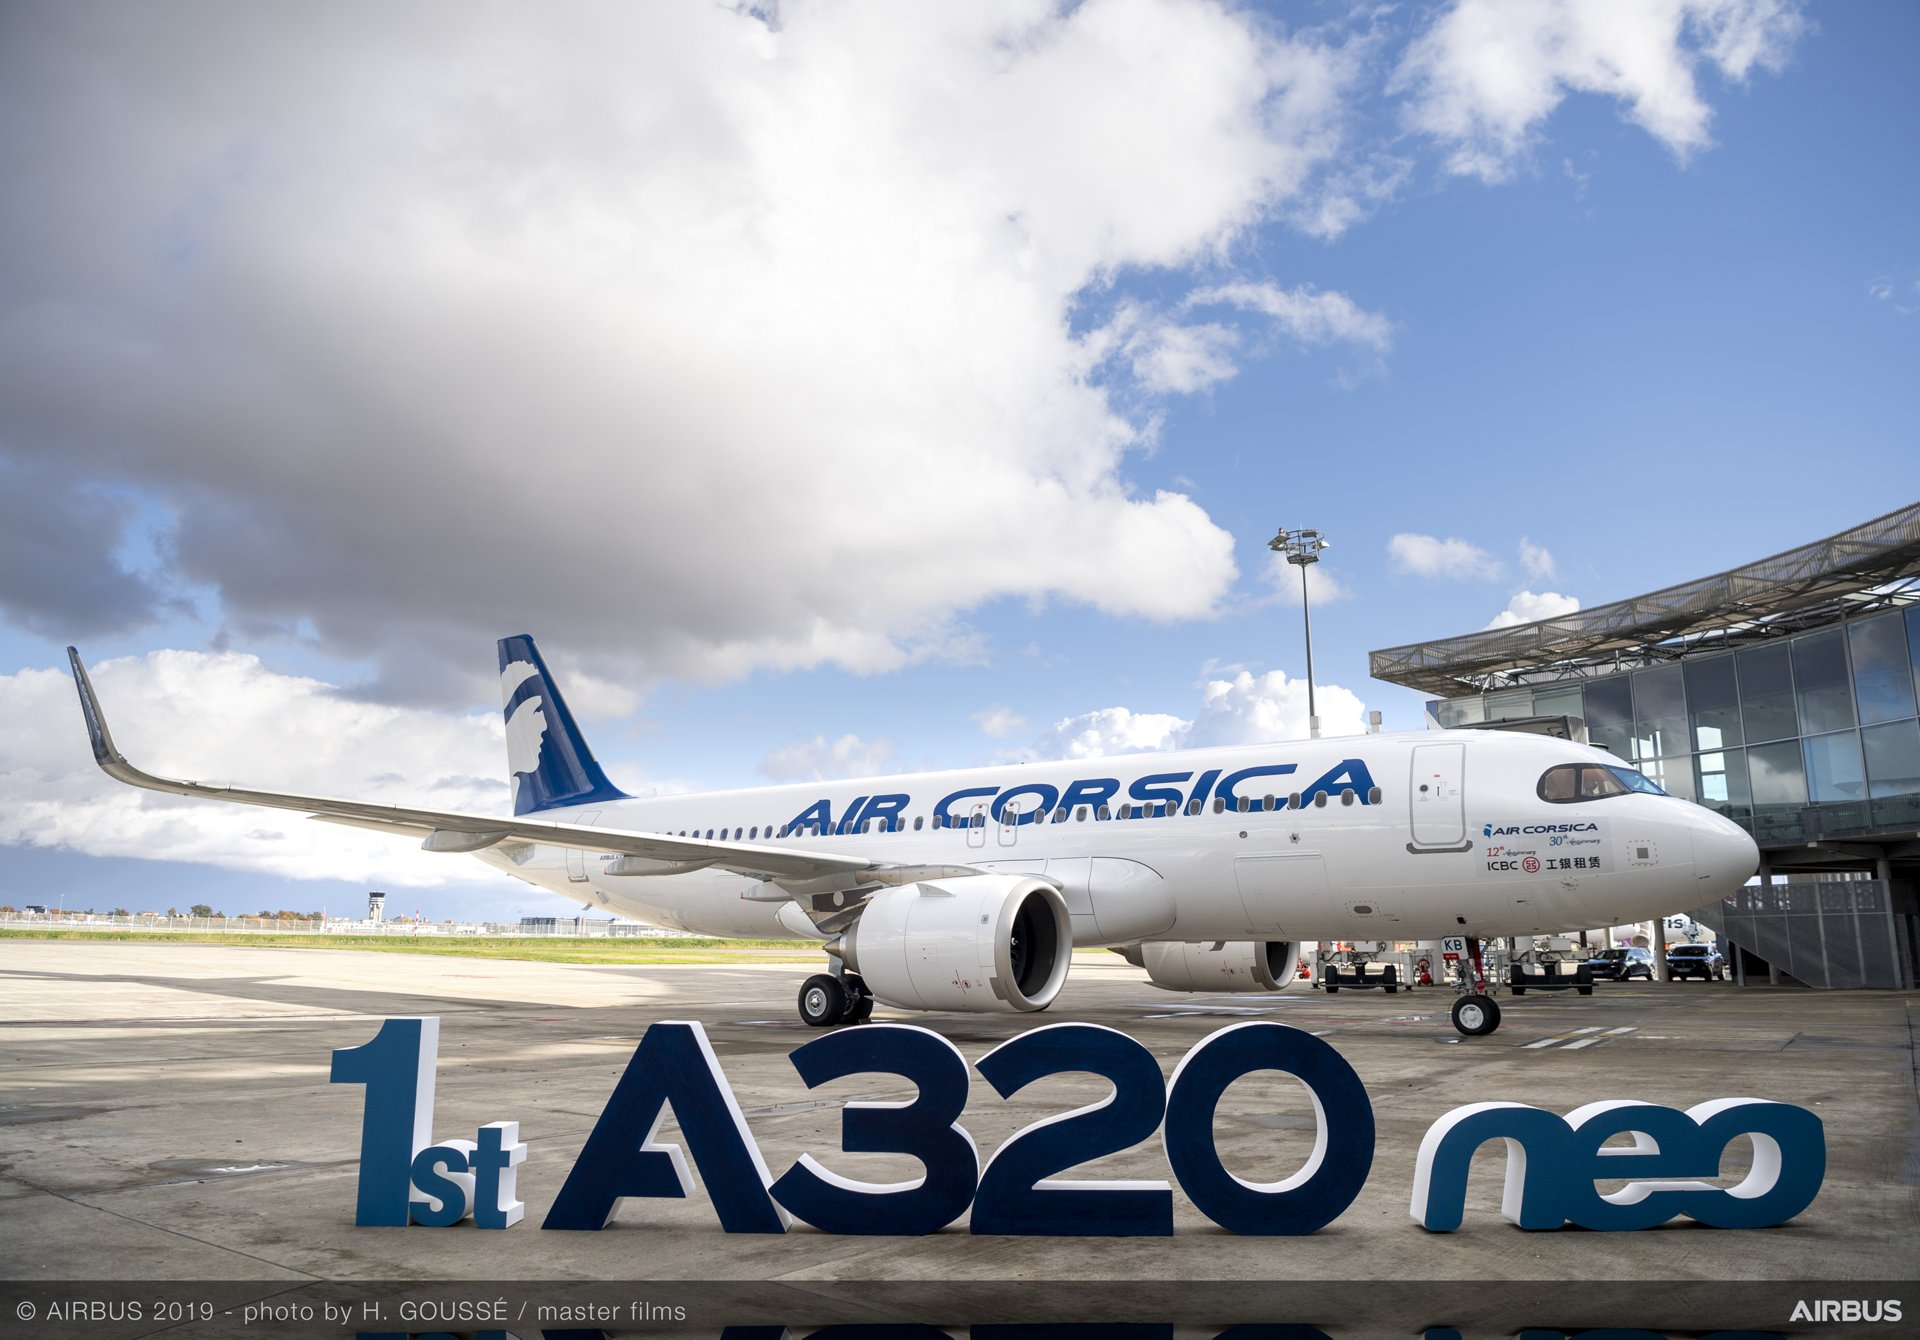 Air Corsica became the first French A320neo operator with delivery of its no. 1 aircraft from Airbus